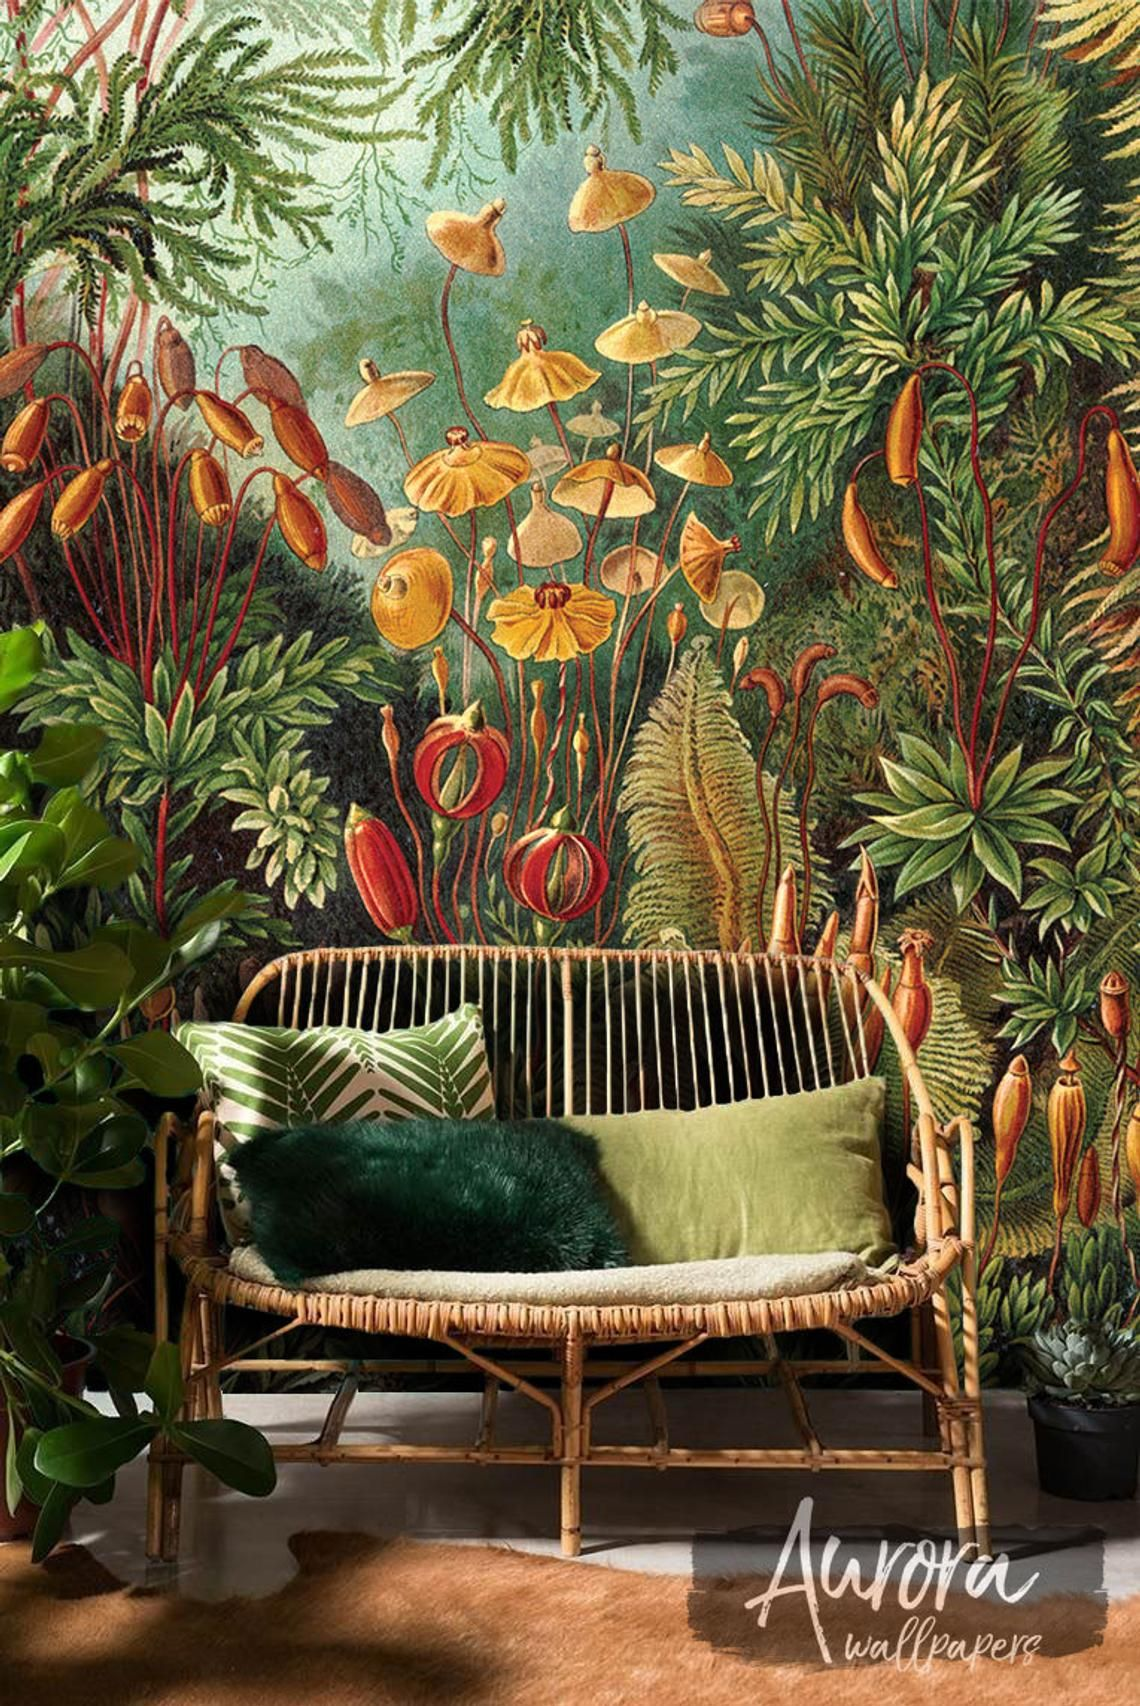 Photo of Amazon Jungle Removable Wallpaper, Repositionable, Bright Plants, Colorful, Vintage Wall Mural, Tropical Wall Decor # 07